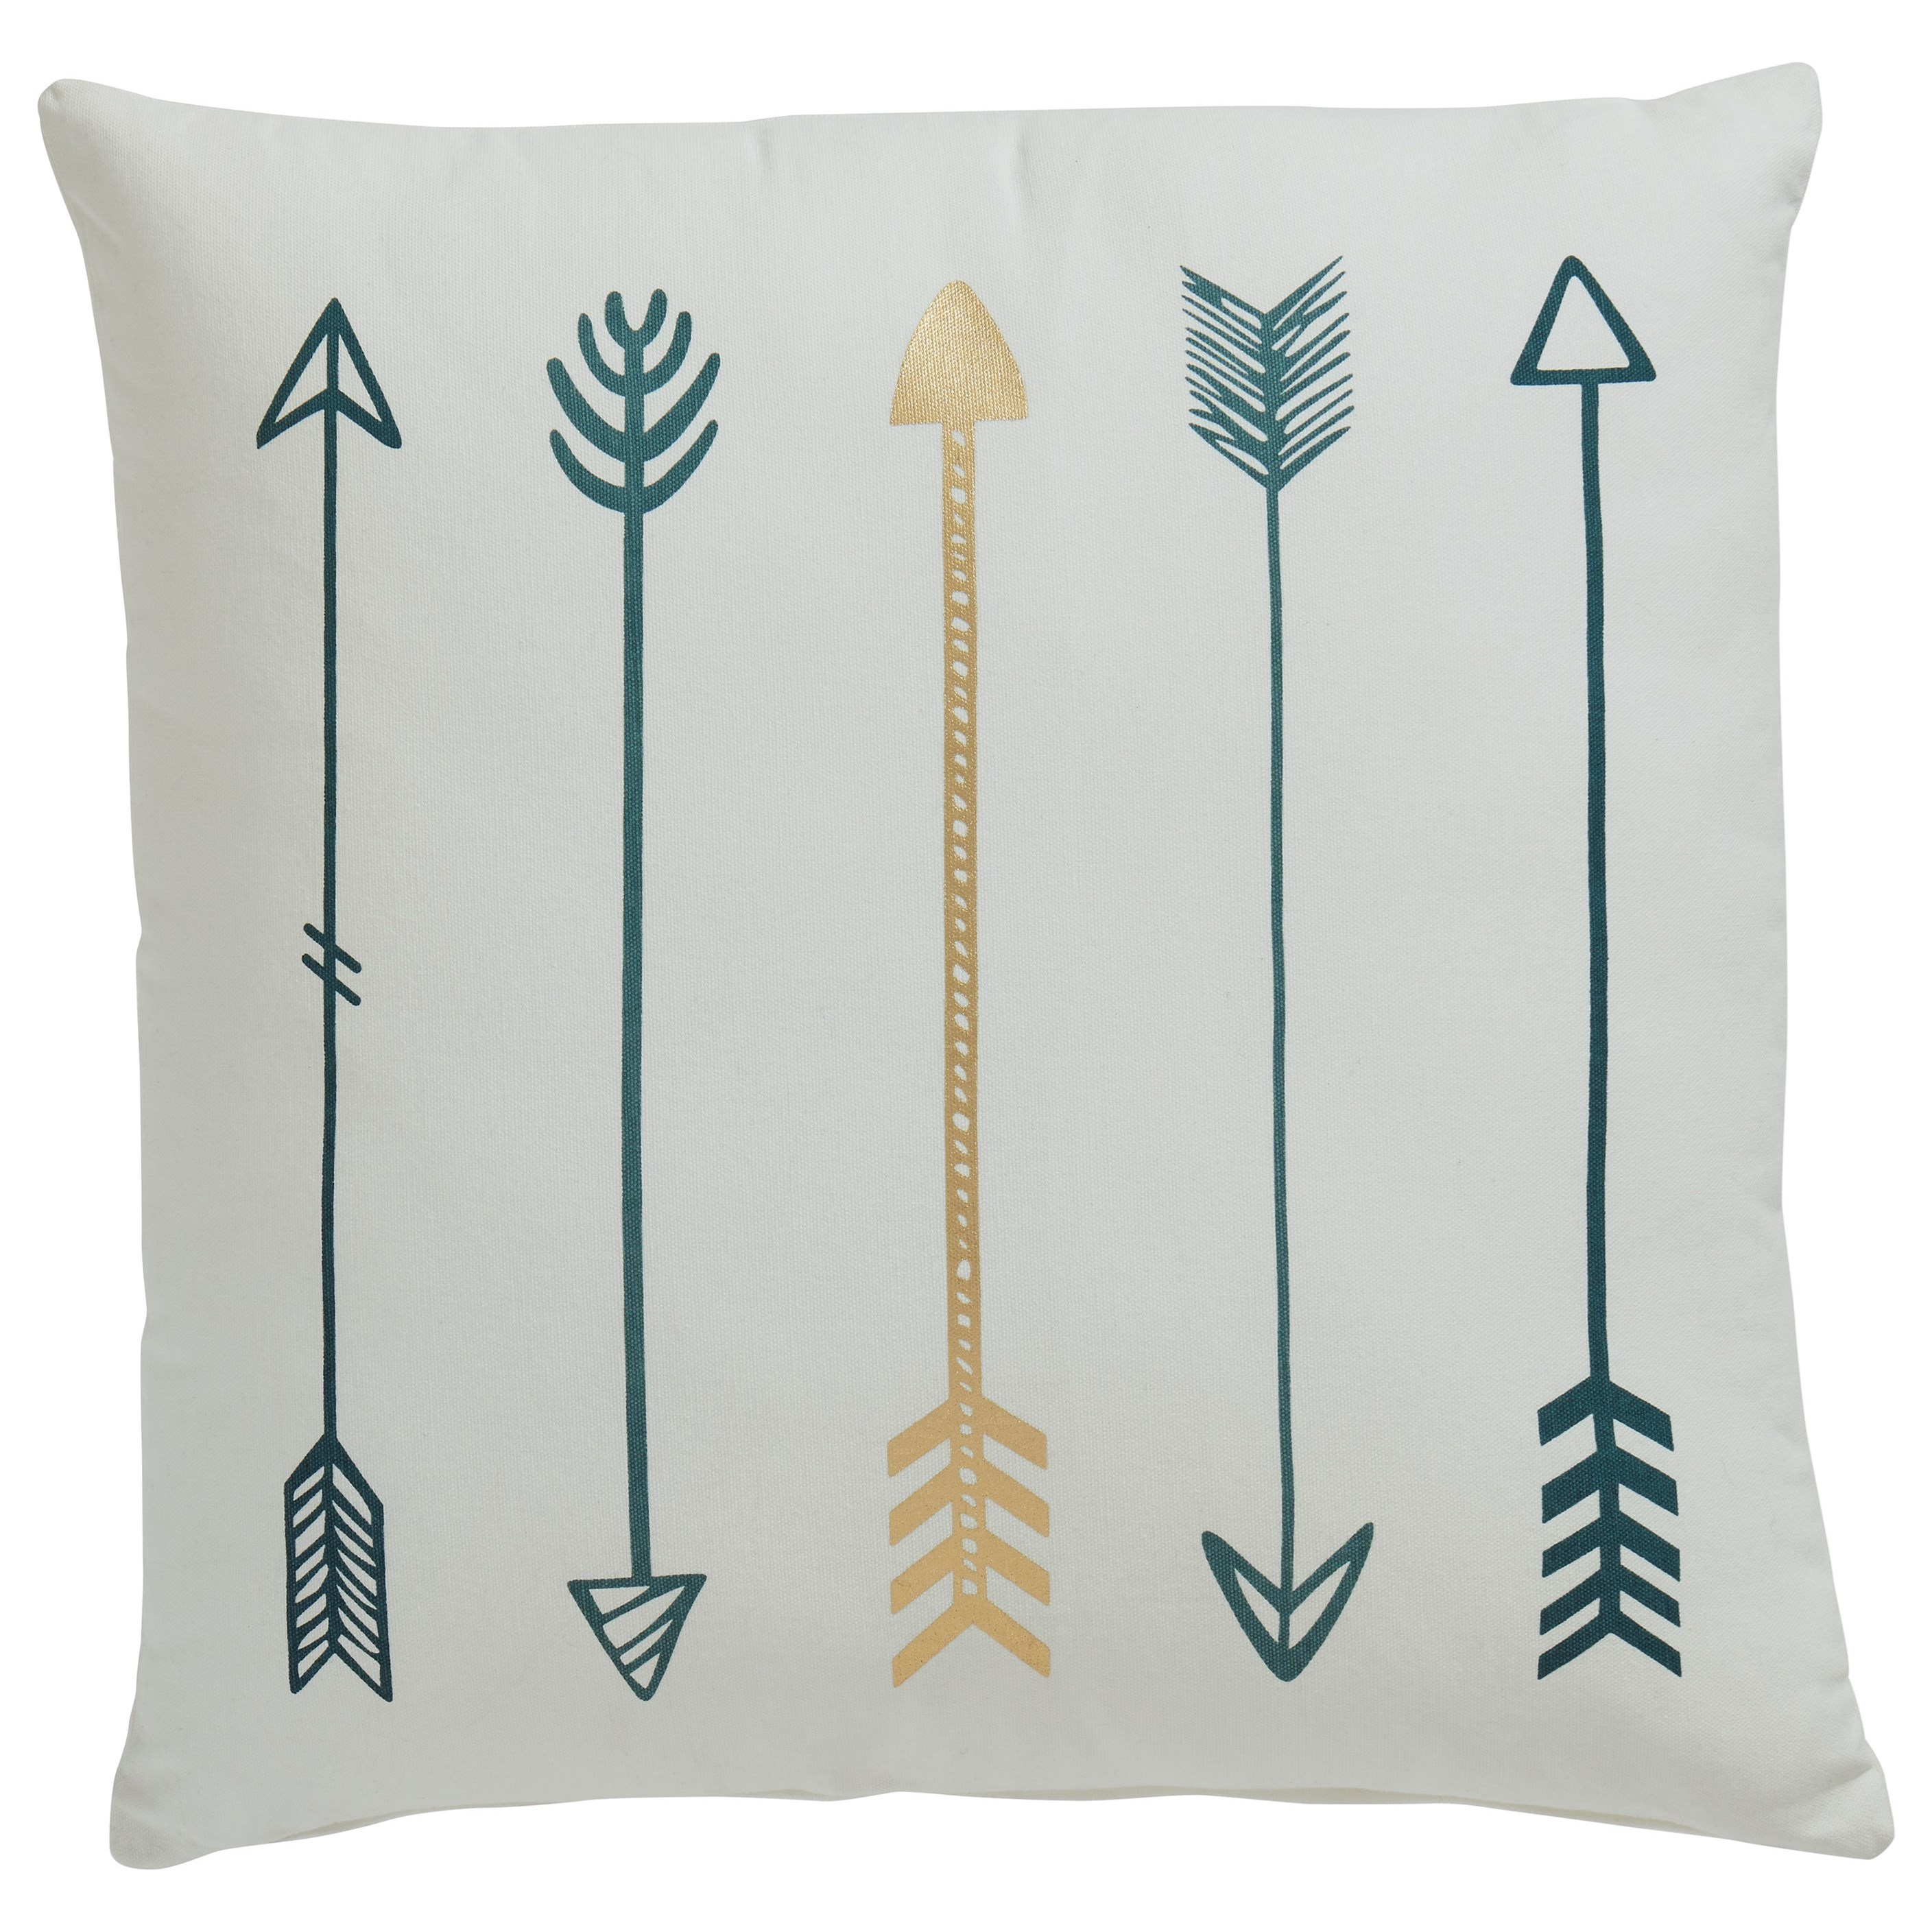 Pillows Gyldan White/Teal/Gold Pillow by Ashley (Signature Design) at Johnny Janosik